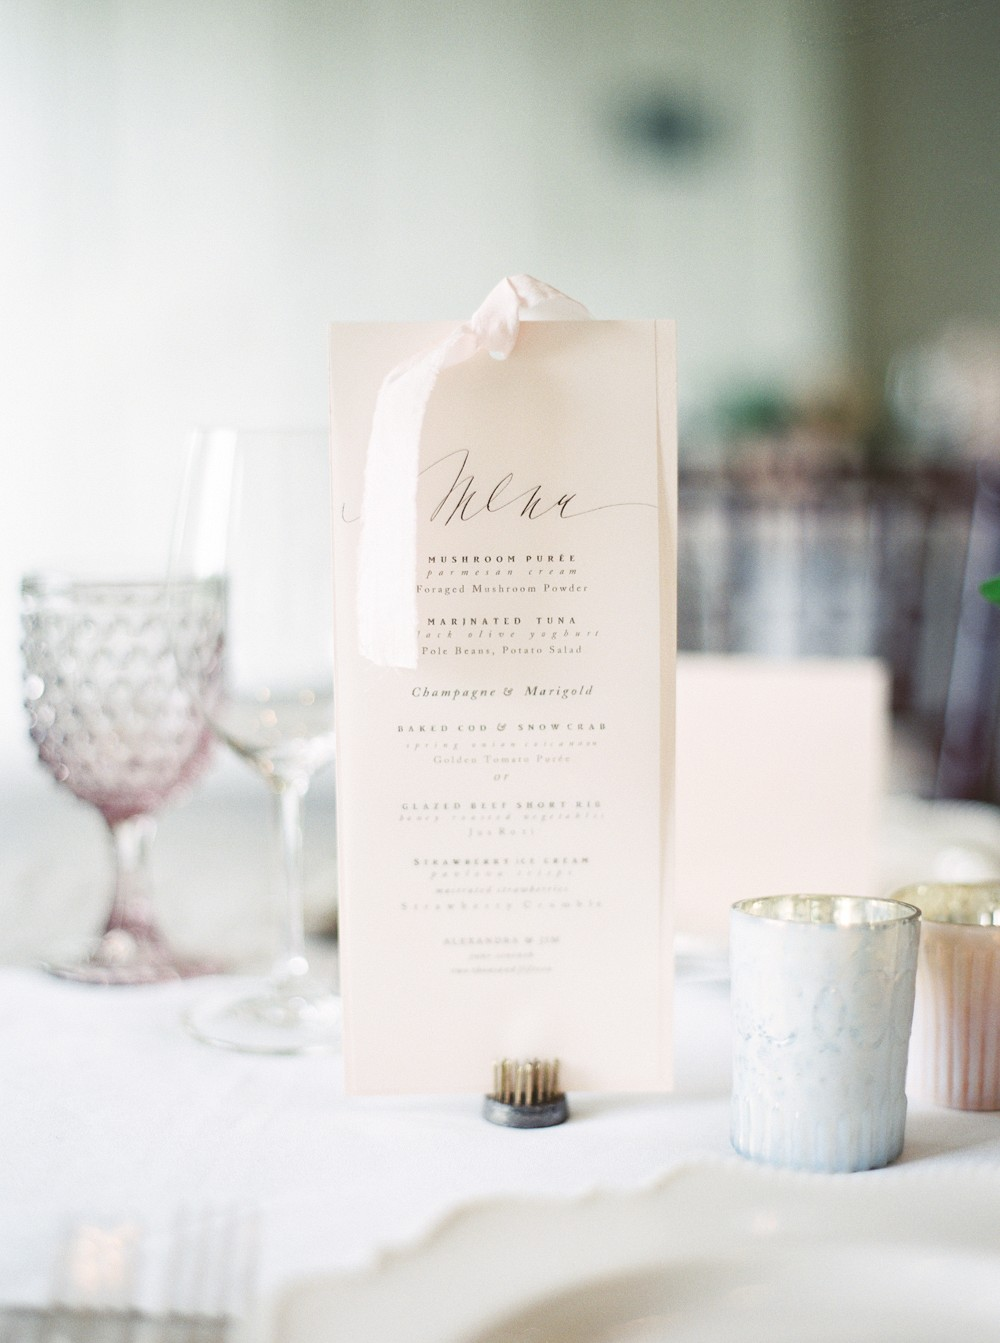 Dinner menu | Sophisticated Real Wedding in Ontario by When He Found Her on Wedding Sparrow